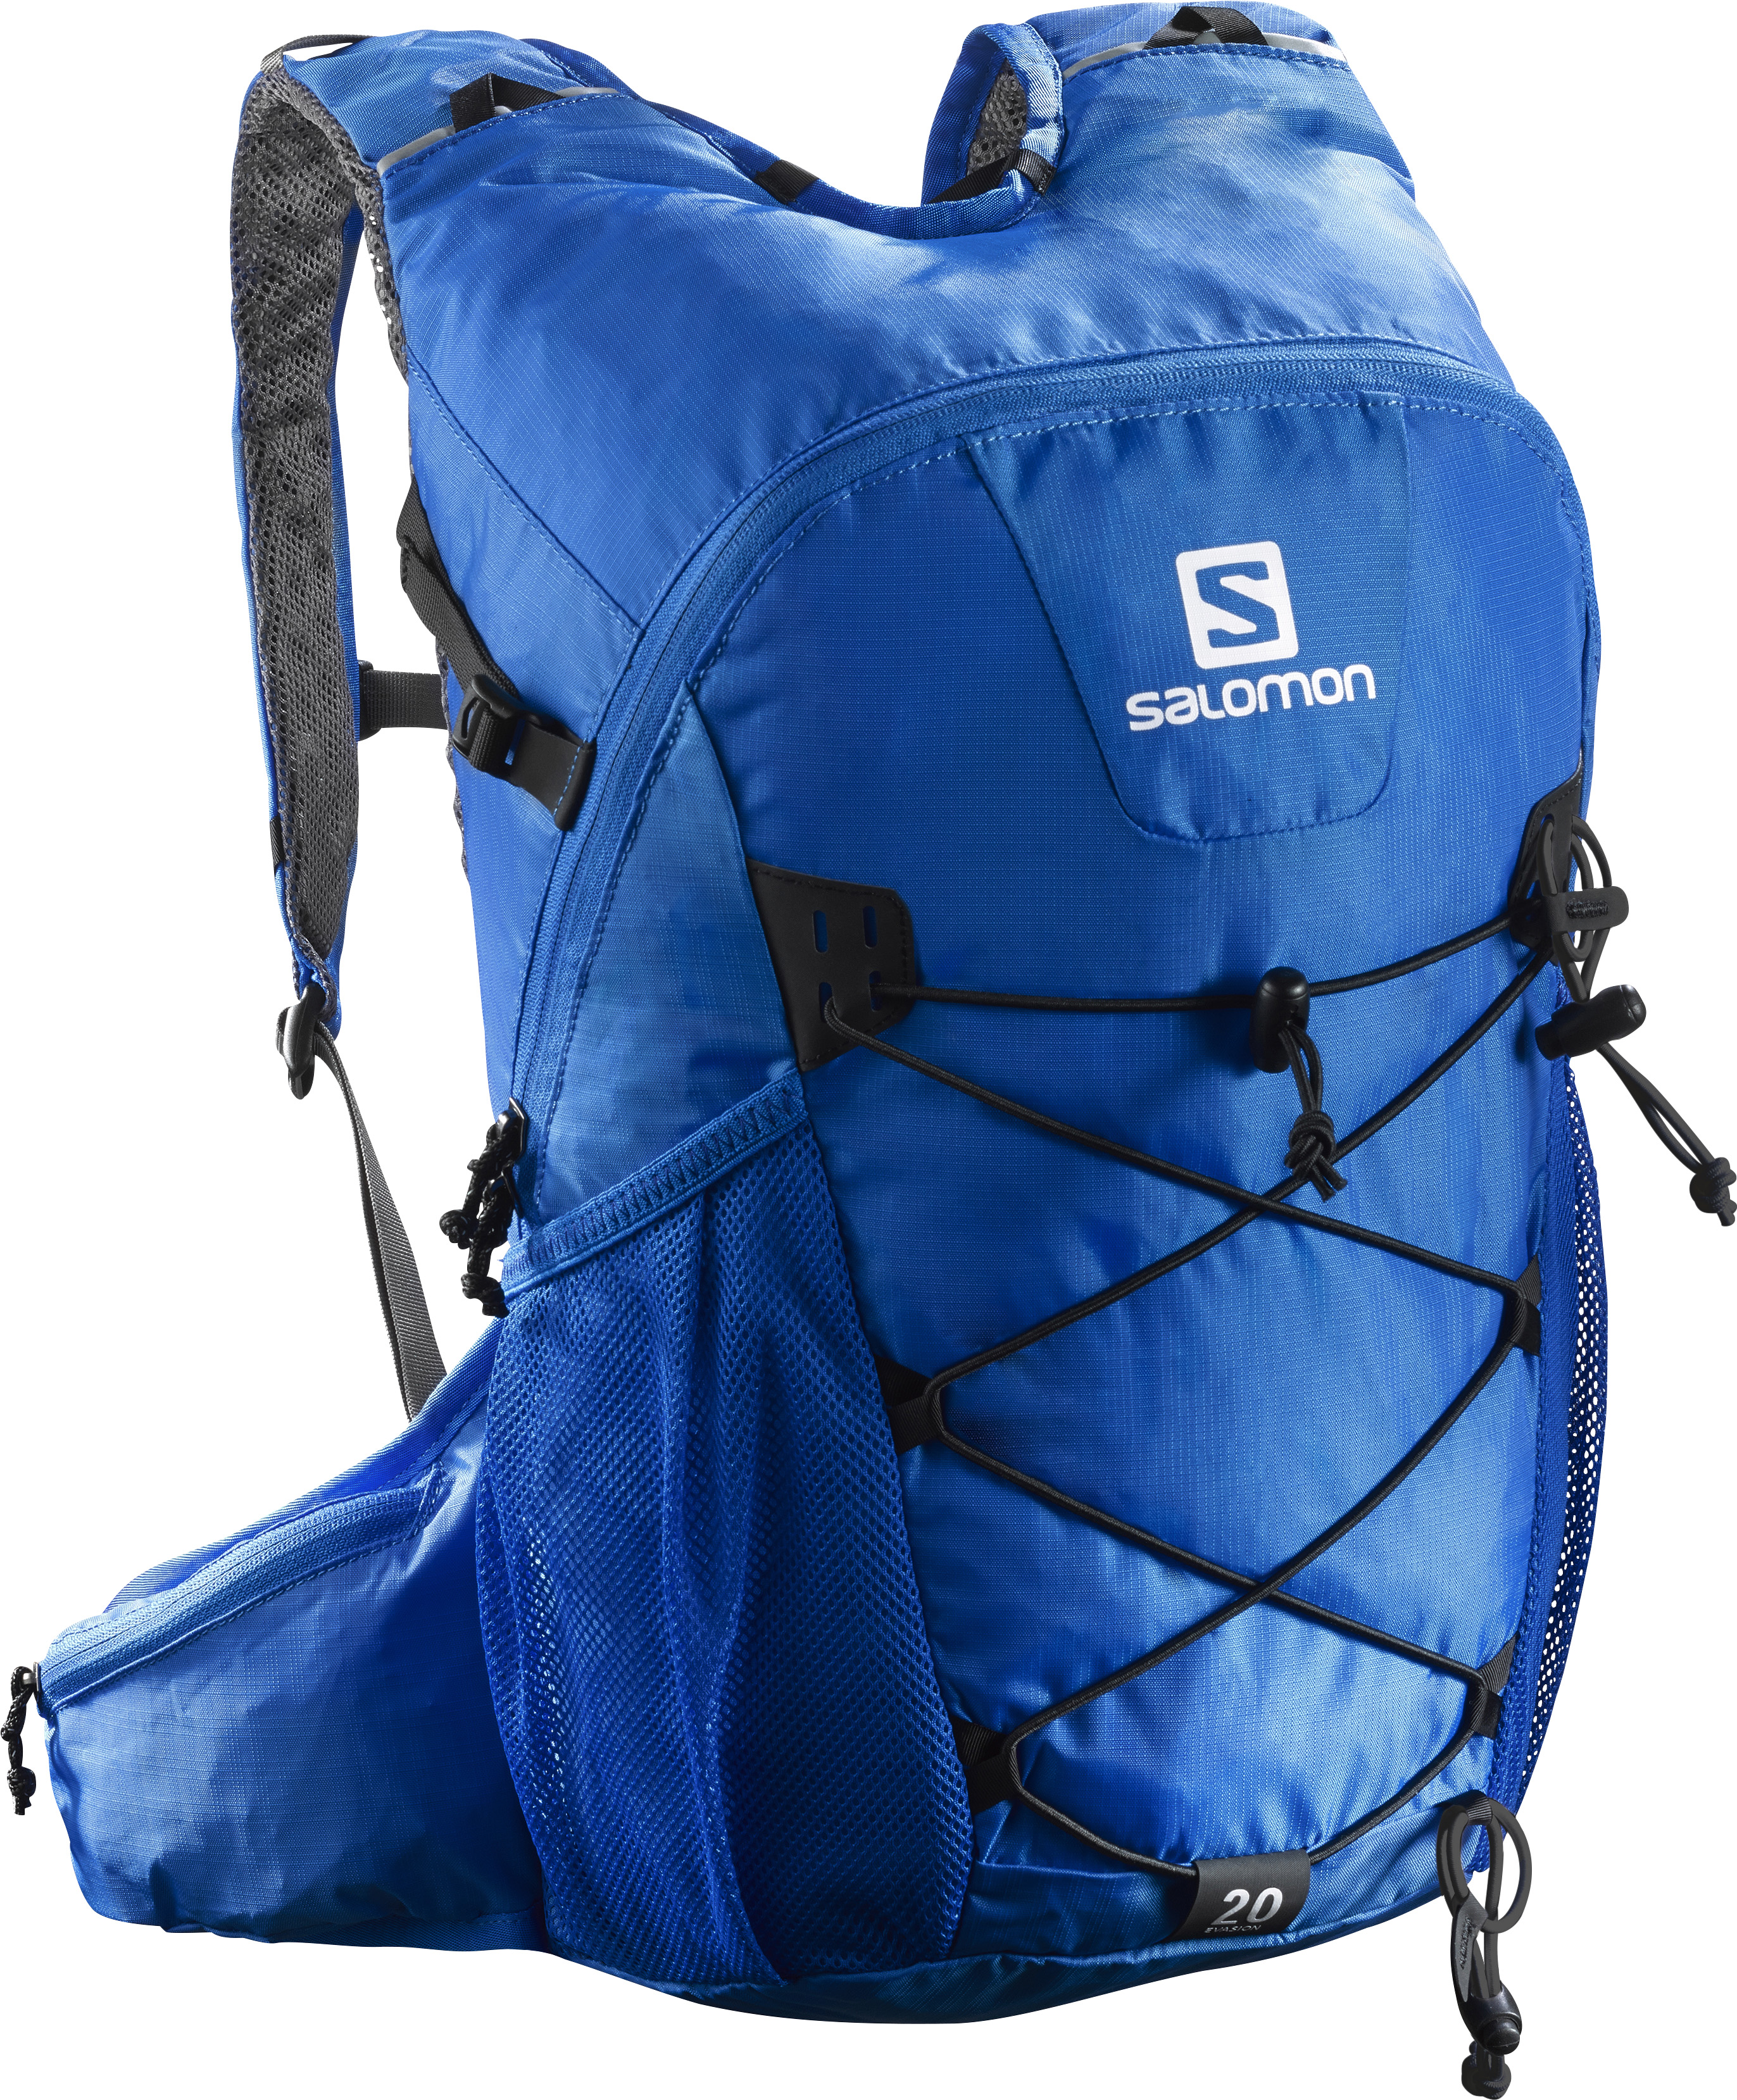 Salomon Evasion 20 Union Blue 382393 modrá